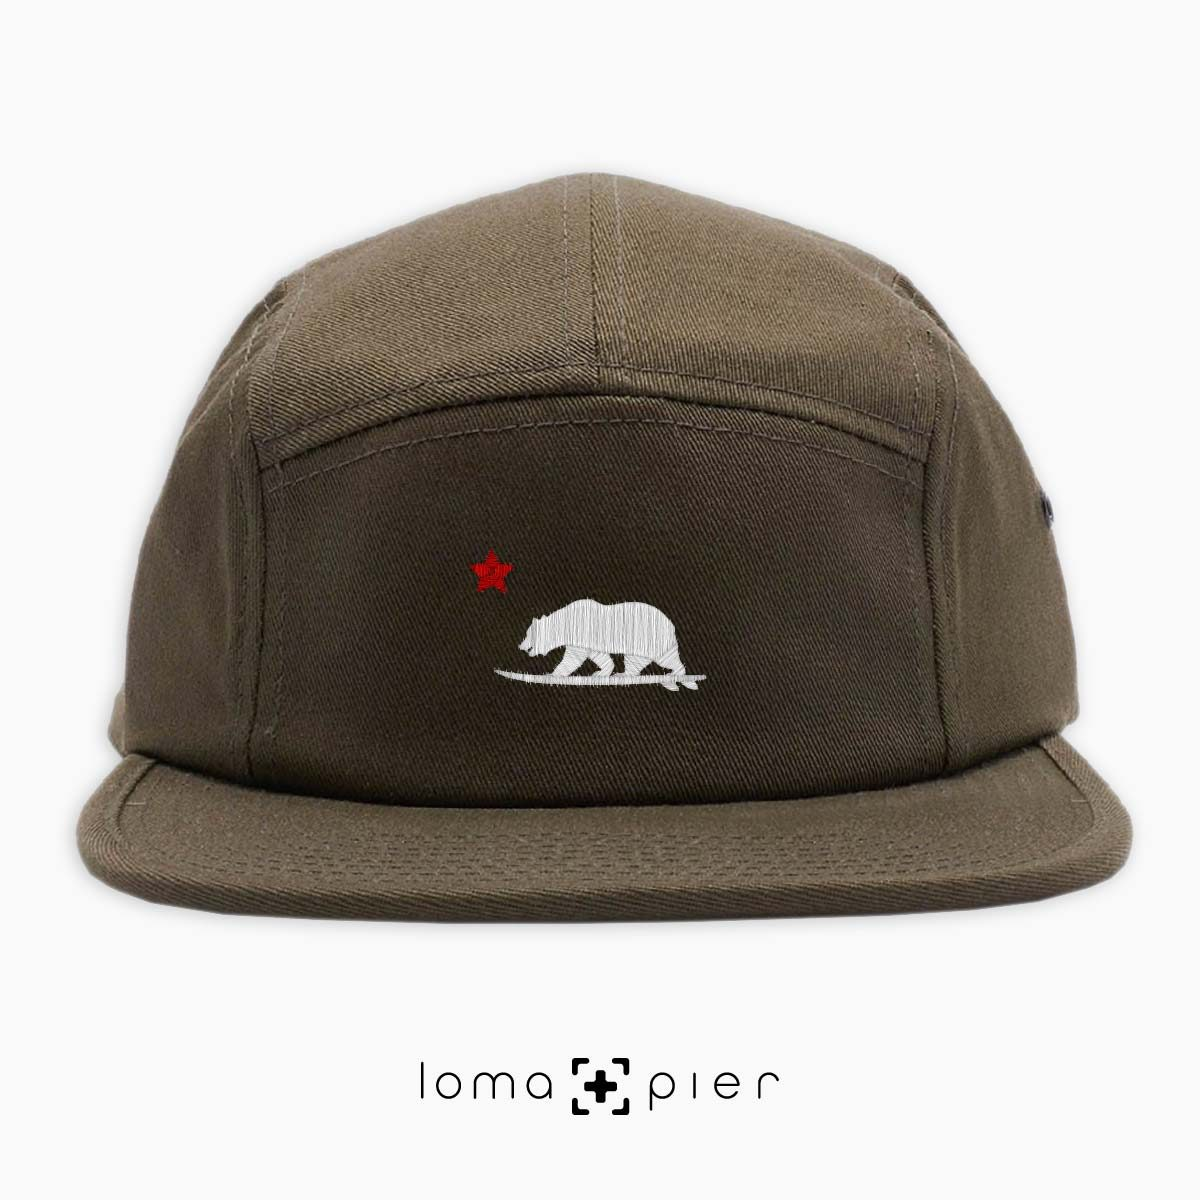 CALIFORNIA BEAR SURFING icon embroidered on an olive green cotton 5-panel hat with white and red thread by loma+pier hat store